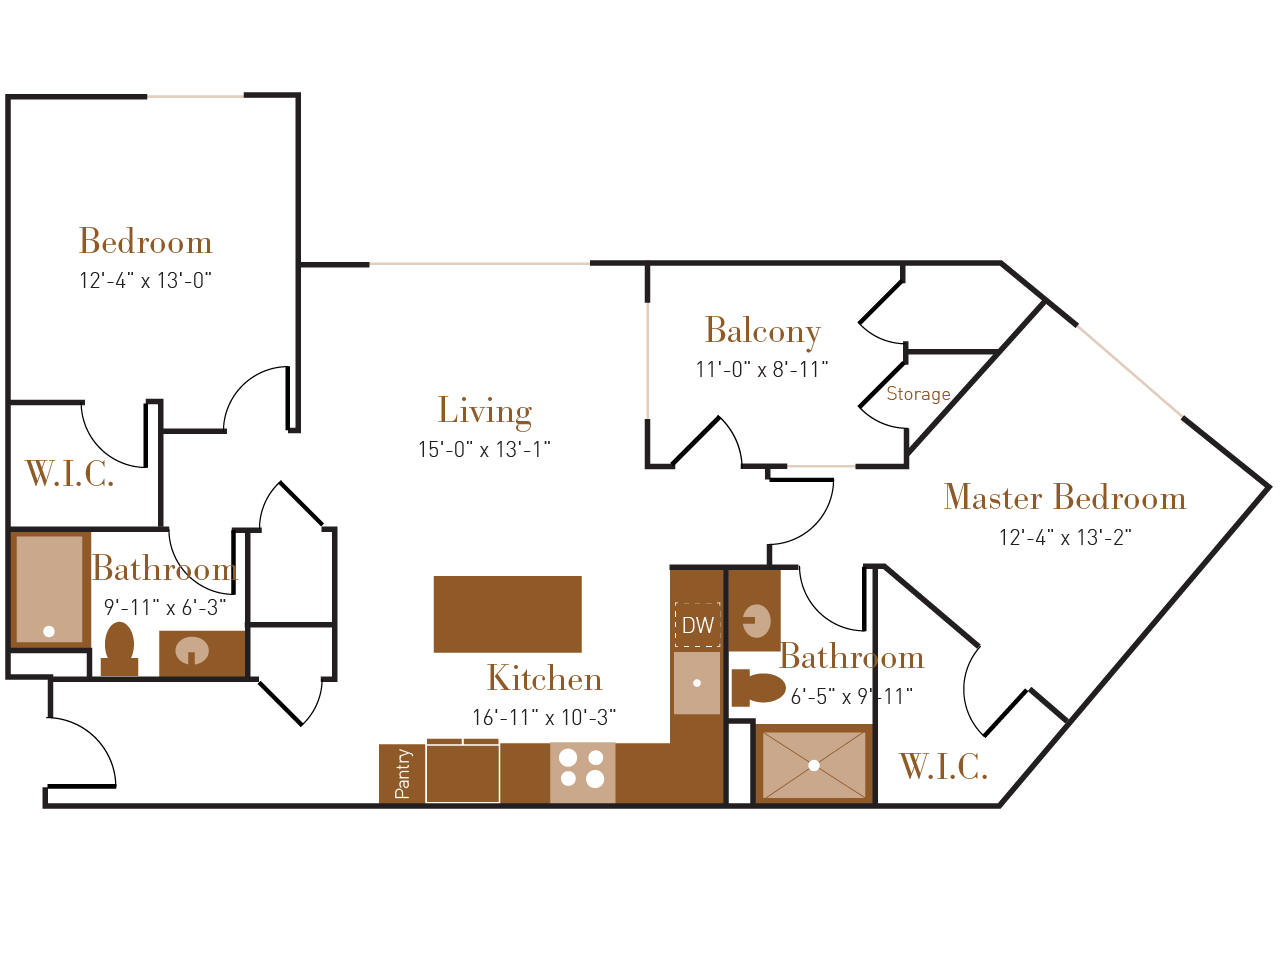 B One floor plan diagram. Two bedrooms, two bathrooms, an open kitchen and living area, a balcony, and a washer dryer.